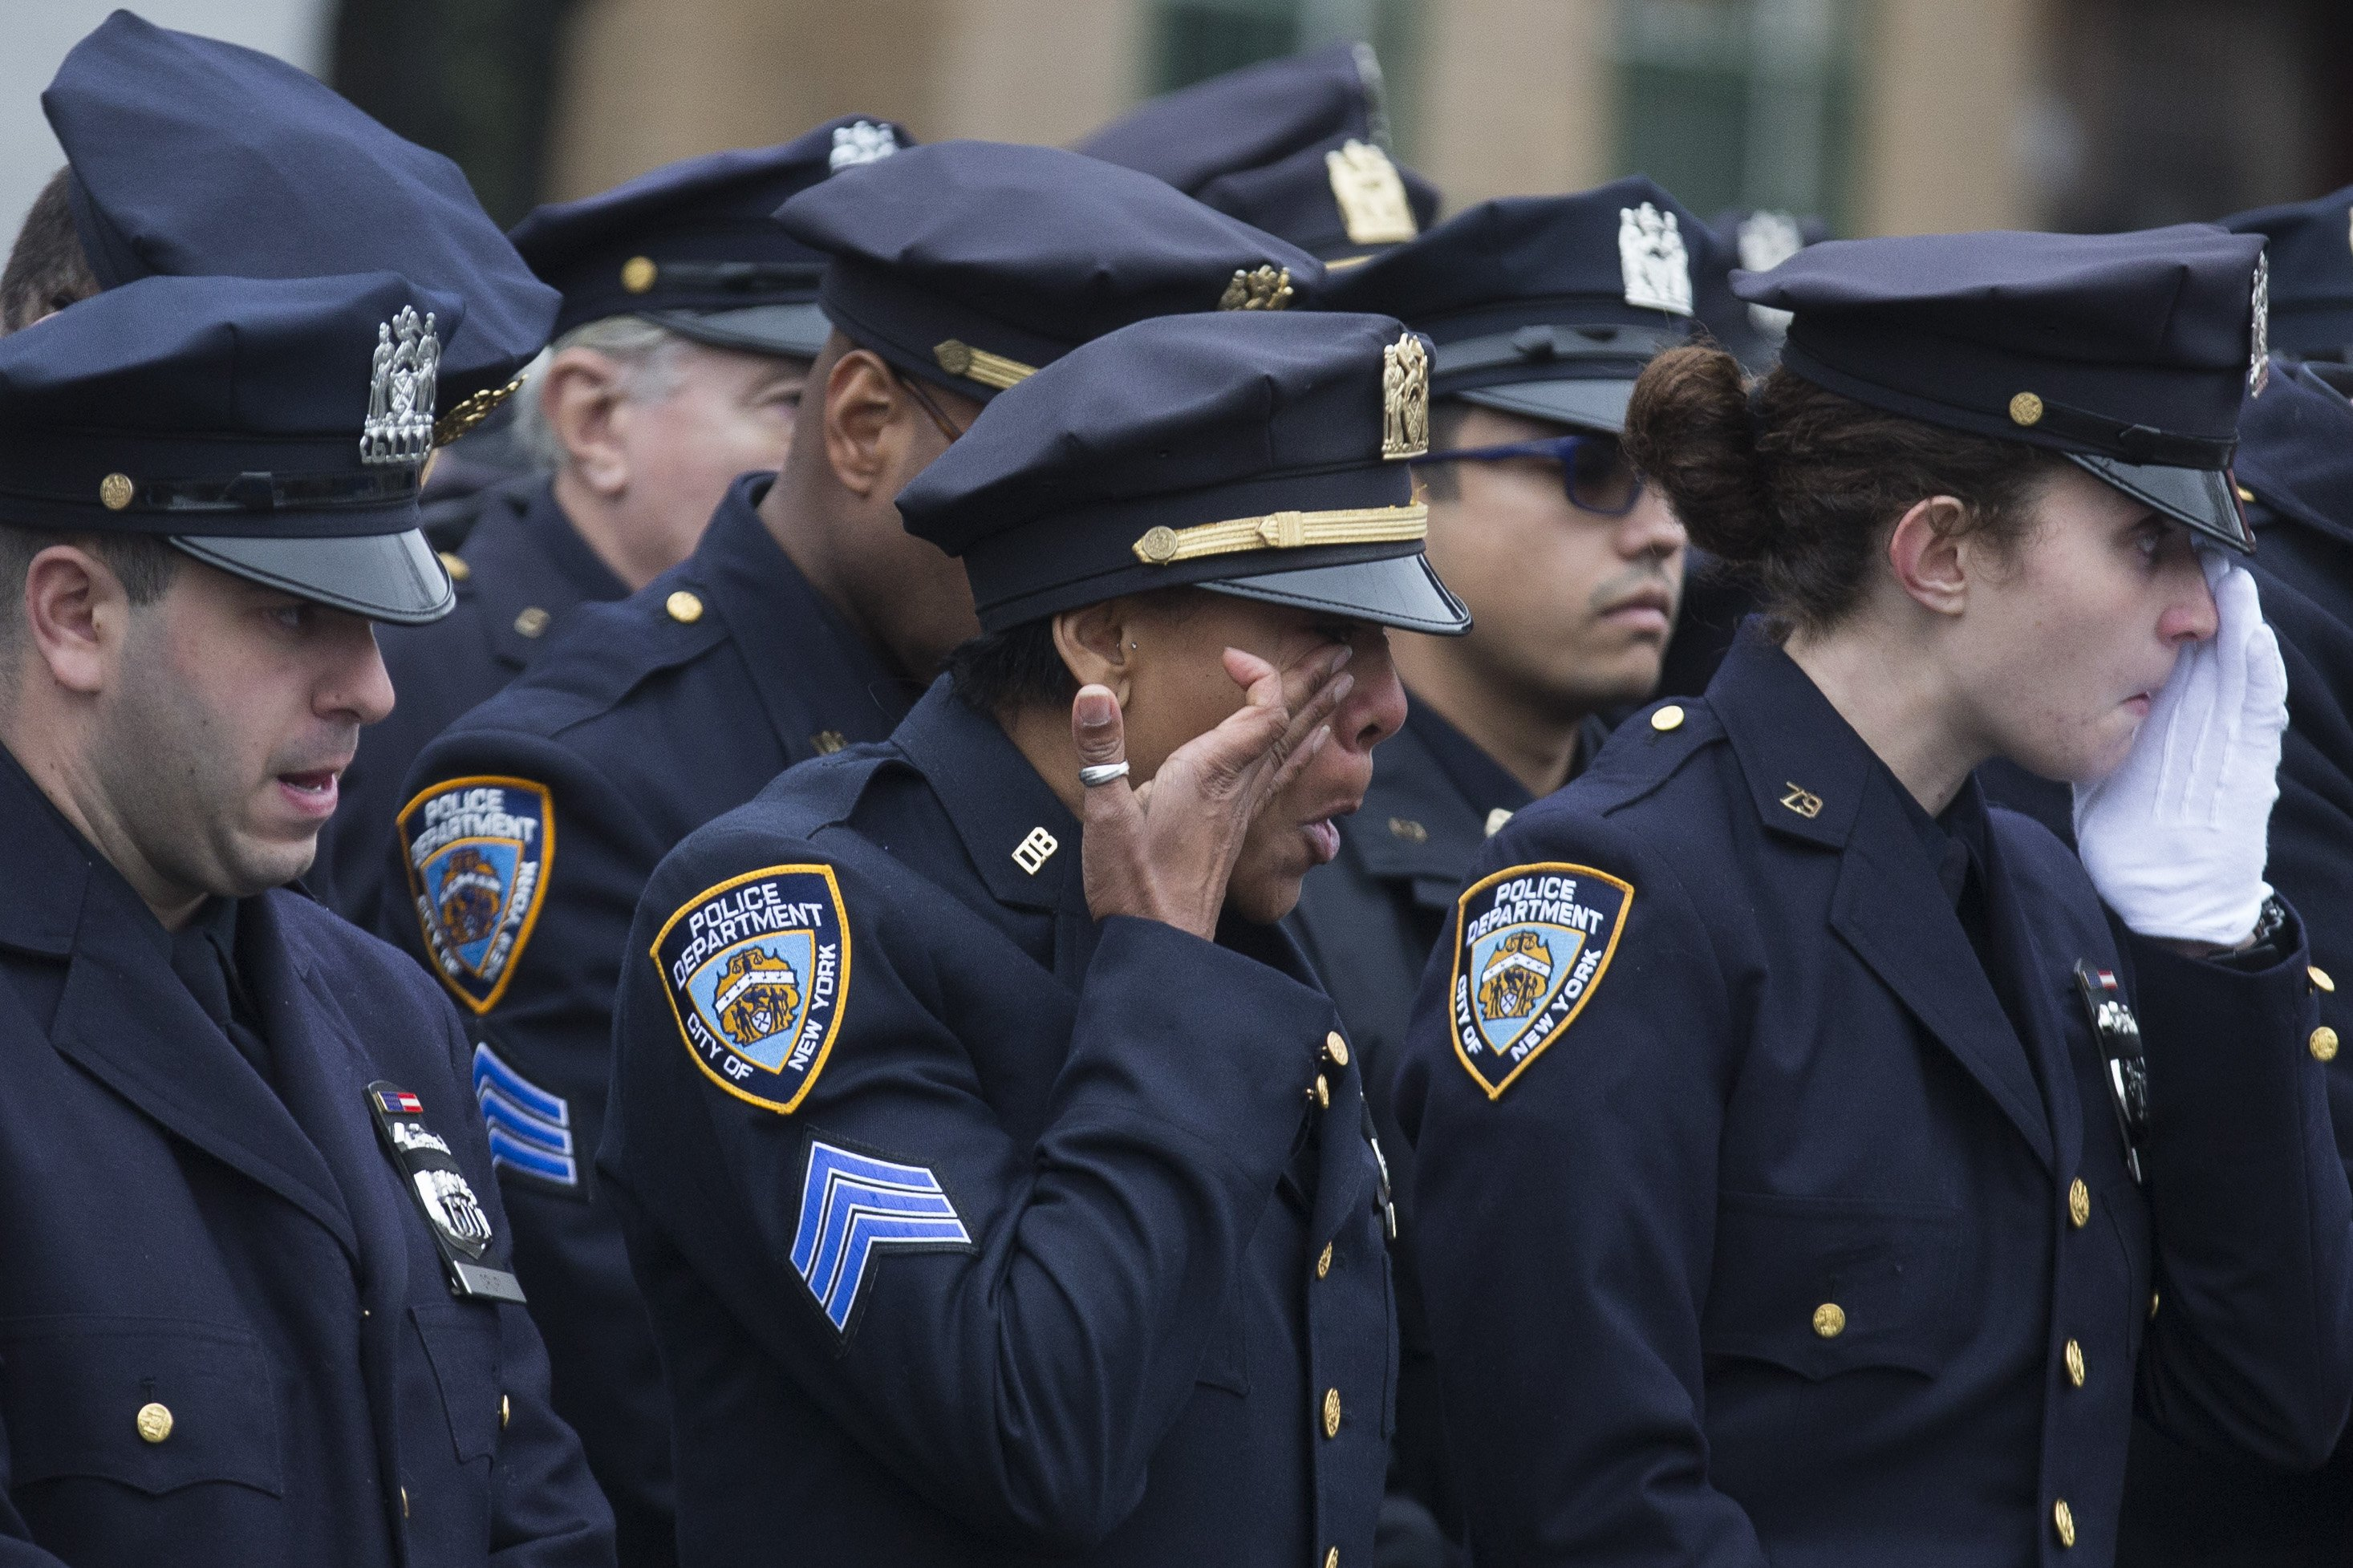 Police officers wipe their tears during the funeral of New York Police Department Officer Wenjian Liu at Aievoli Funeral Home Jan. 4, 2015 in the Brooklyn borough of New York.